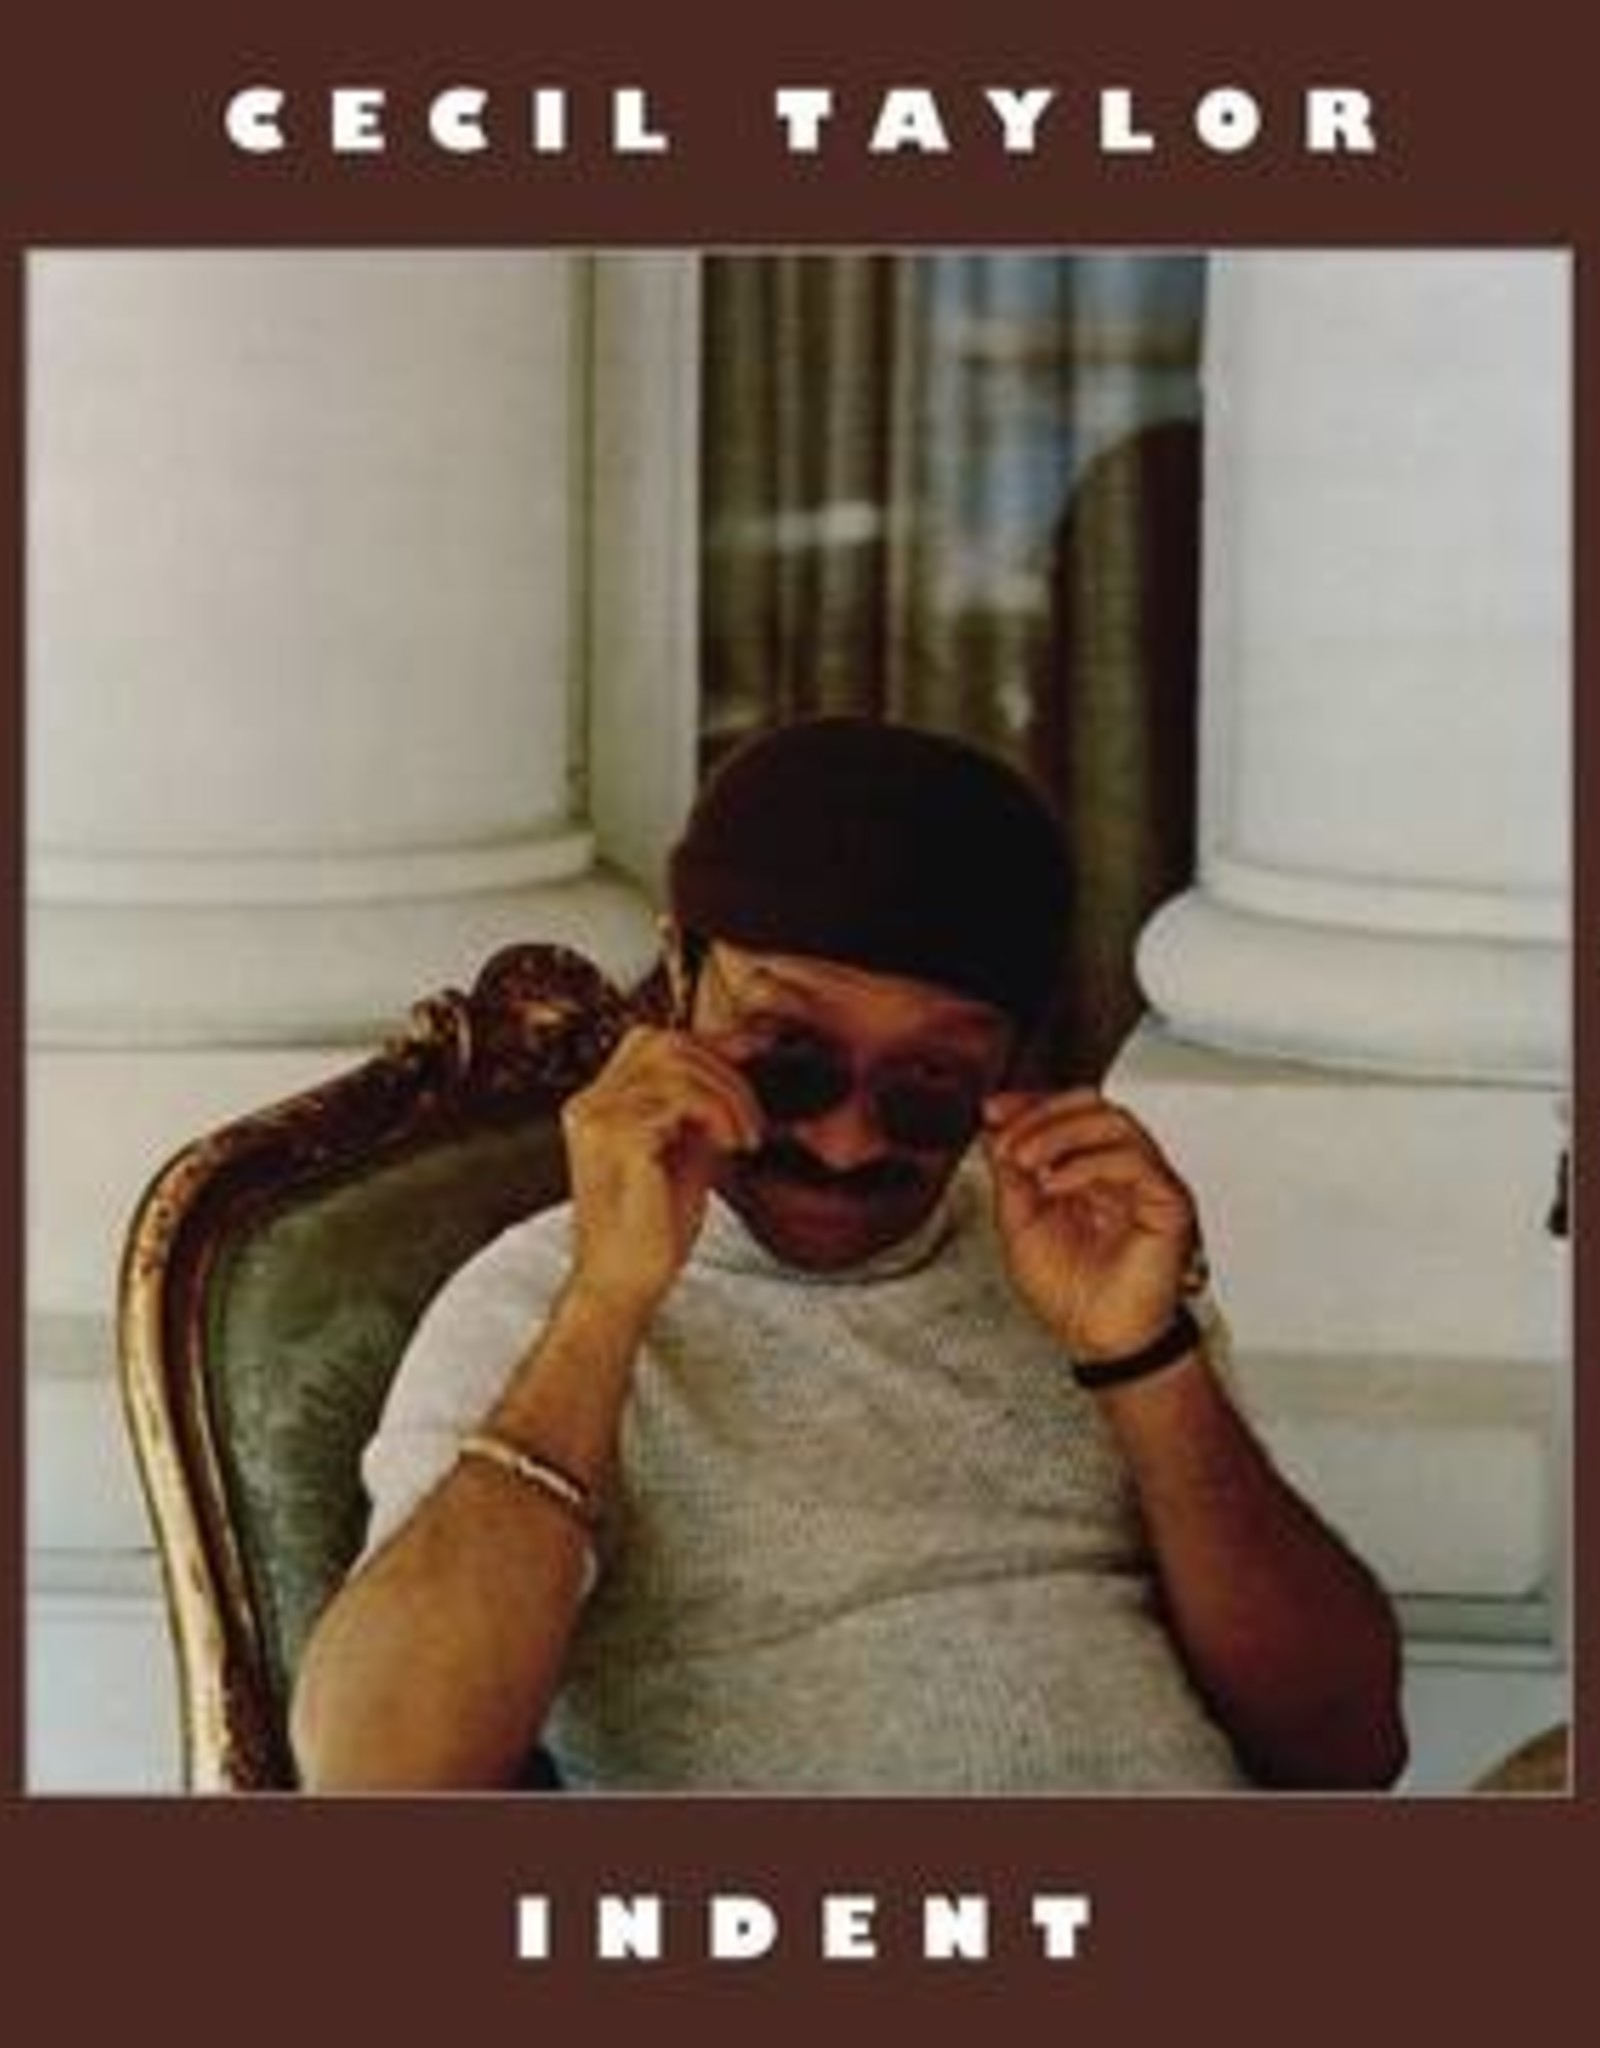 Cecil Taylor - Indent (Colored Vinyl) (Rsd 2019)